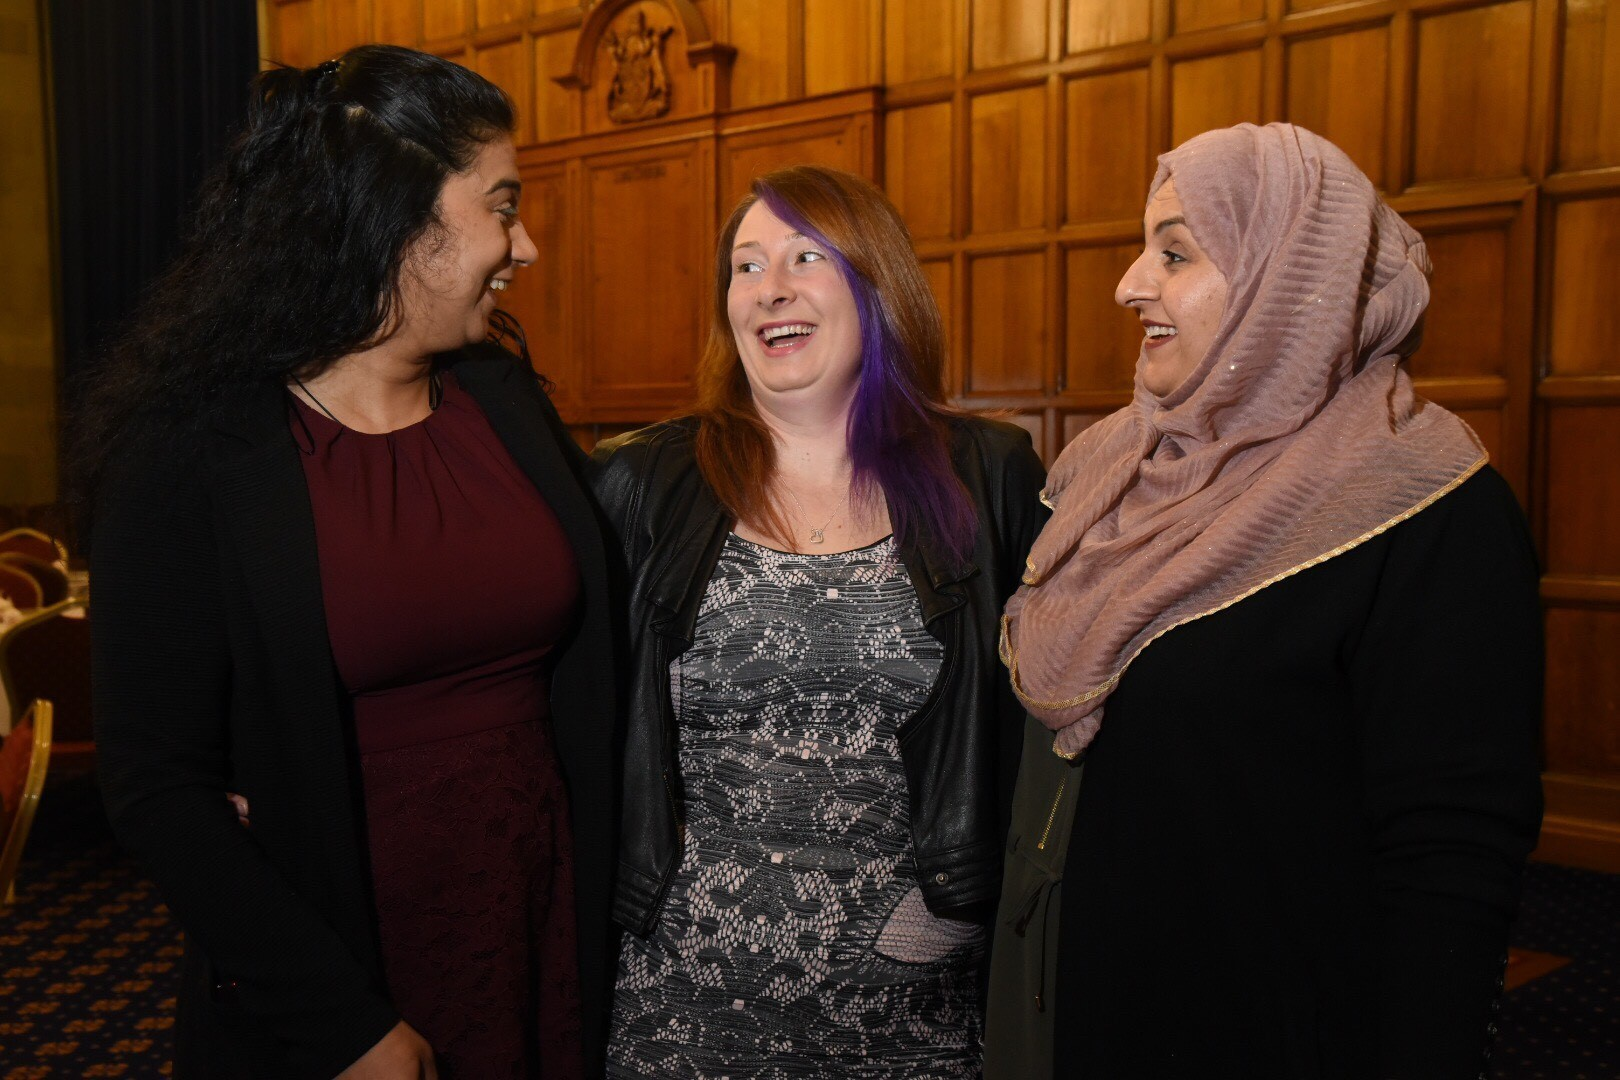 Yasmin Majid, Louise Horrell and Shabana Butt who joined the Mothers Against Radicaliasion scheme